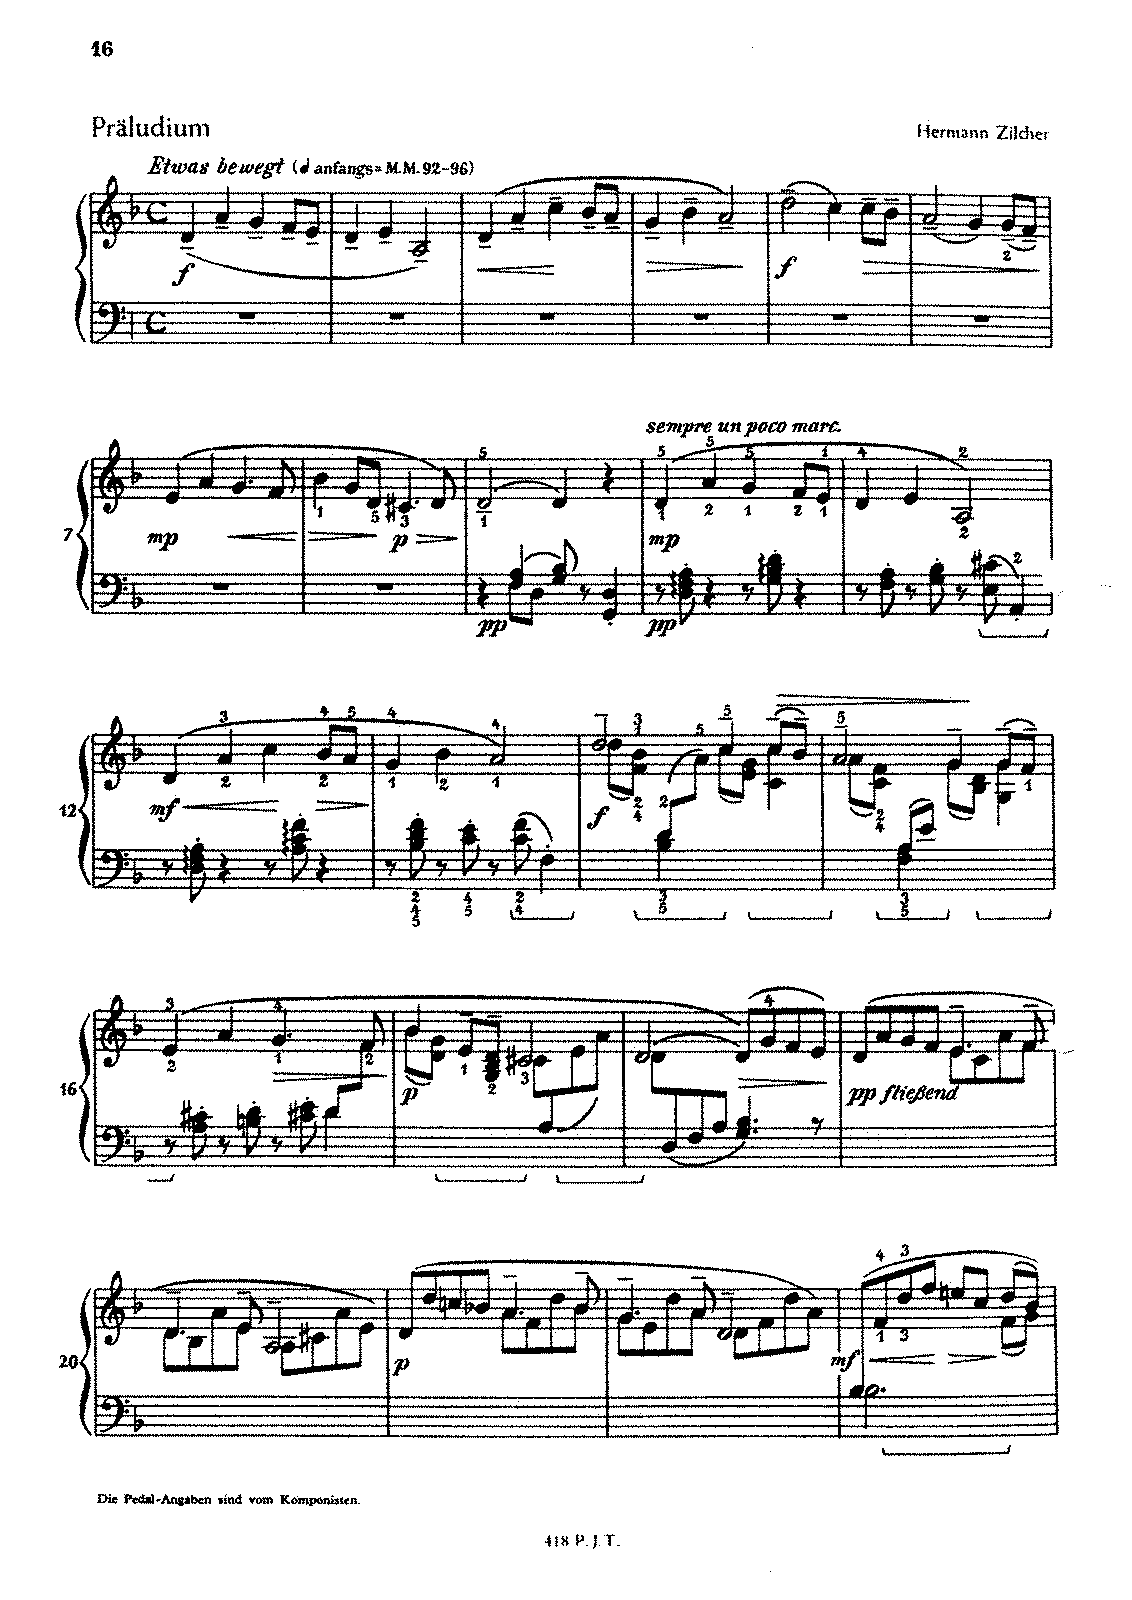 PMLP613521-Zilcher, Hermann - Präludium in D minor - LHA.pdf